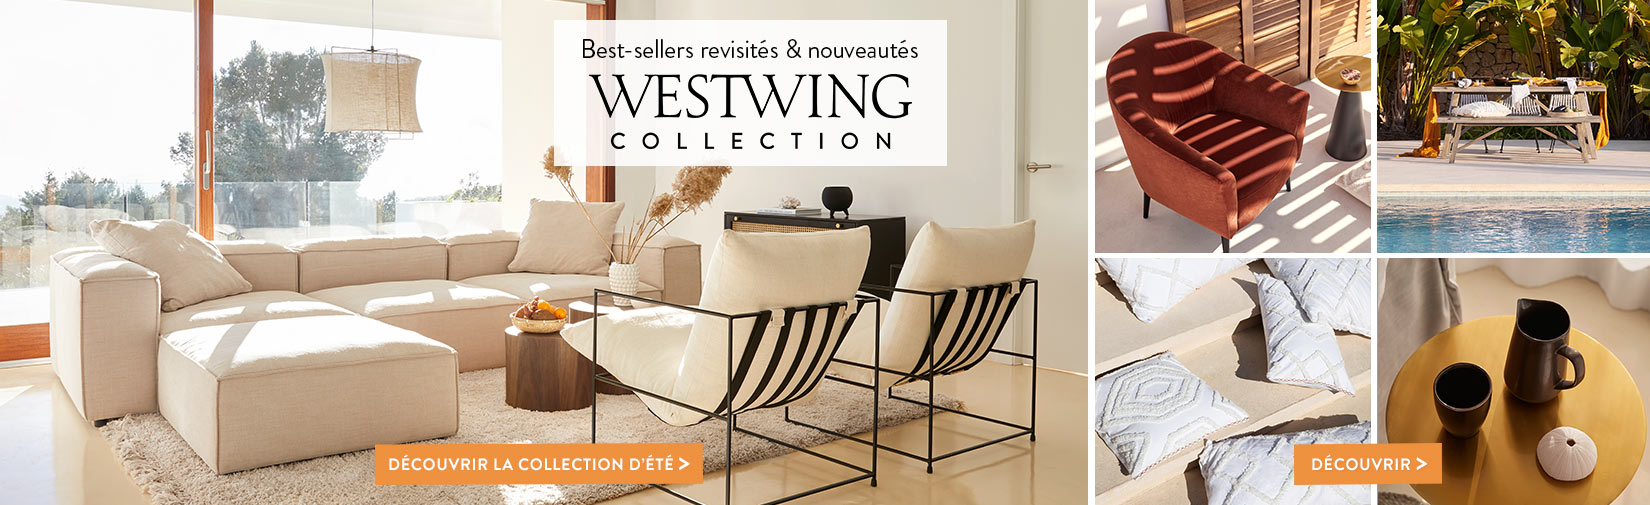 LP-Westwing-Collection_Summer_FR